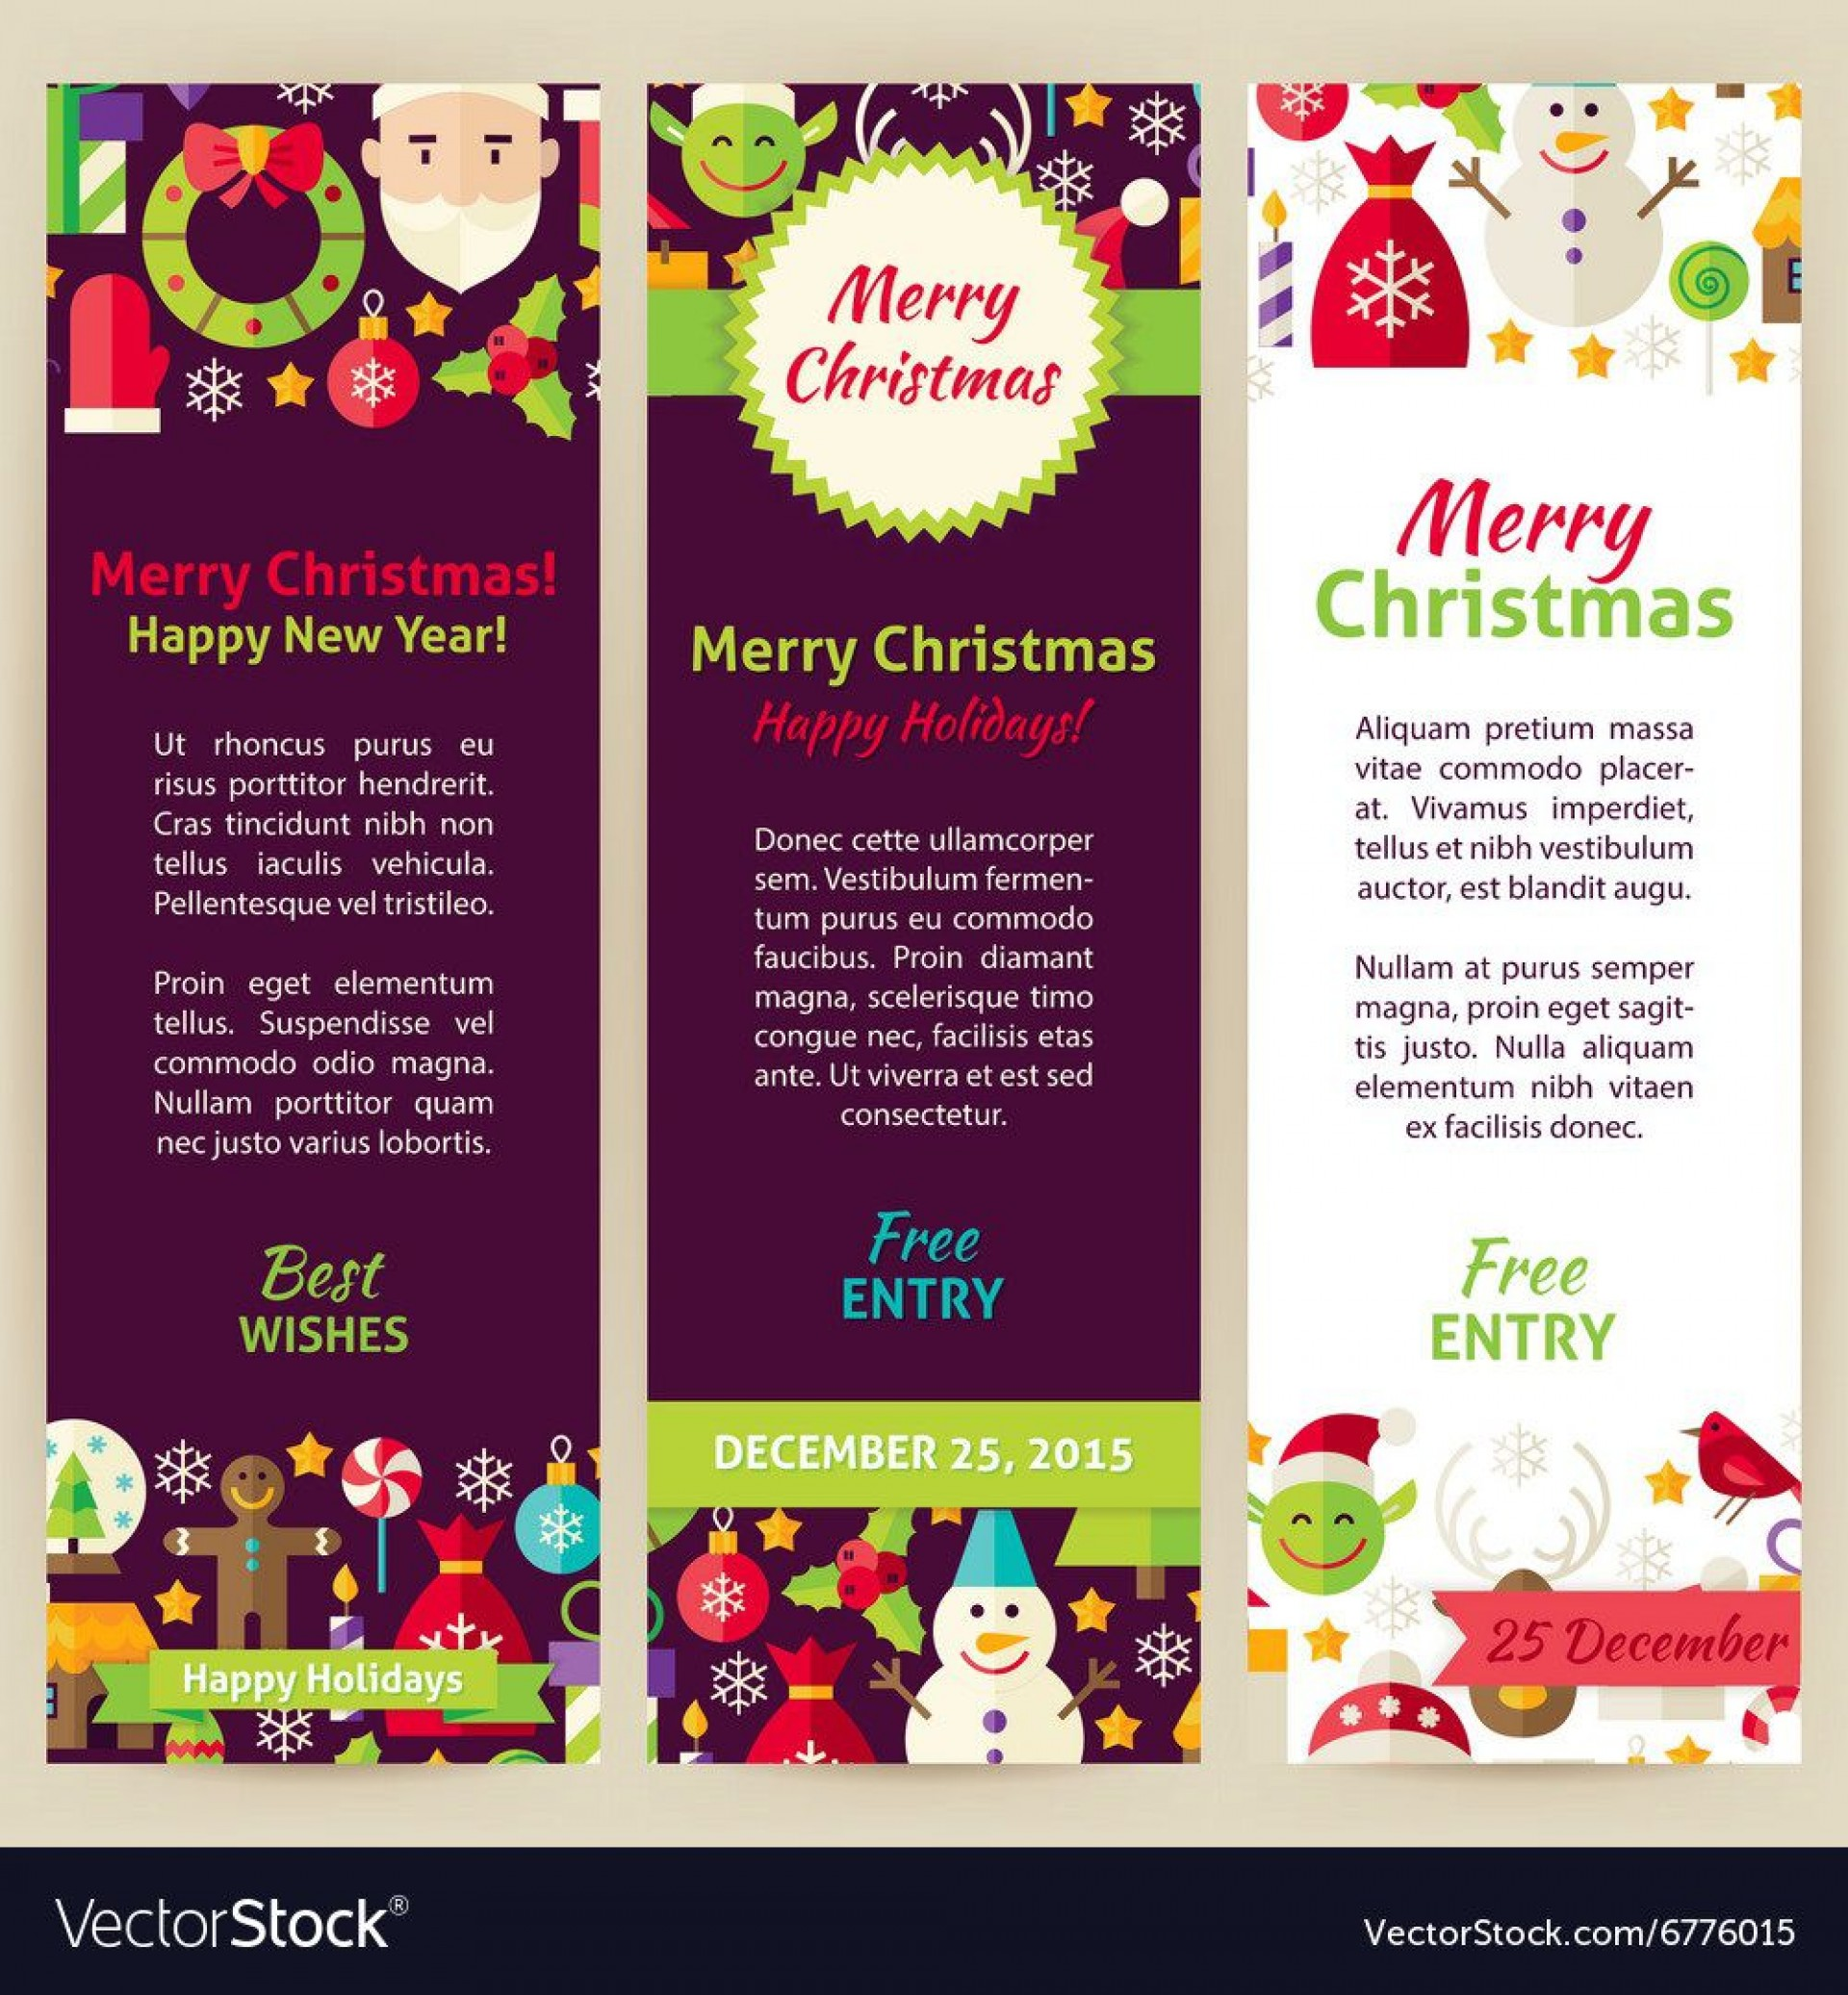 008 Unusual Christma Party Invitation Template Highest Quality  Holiday Download Free Psd1920